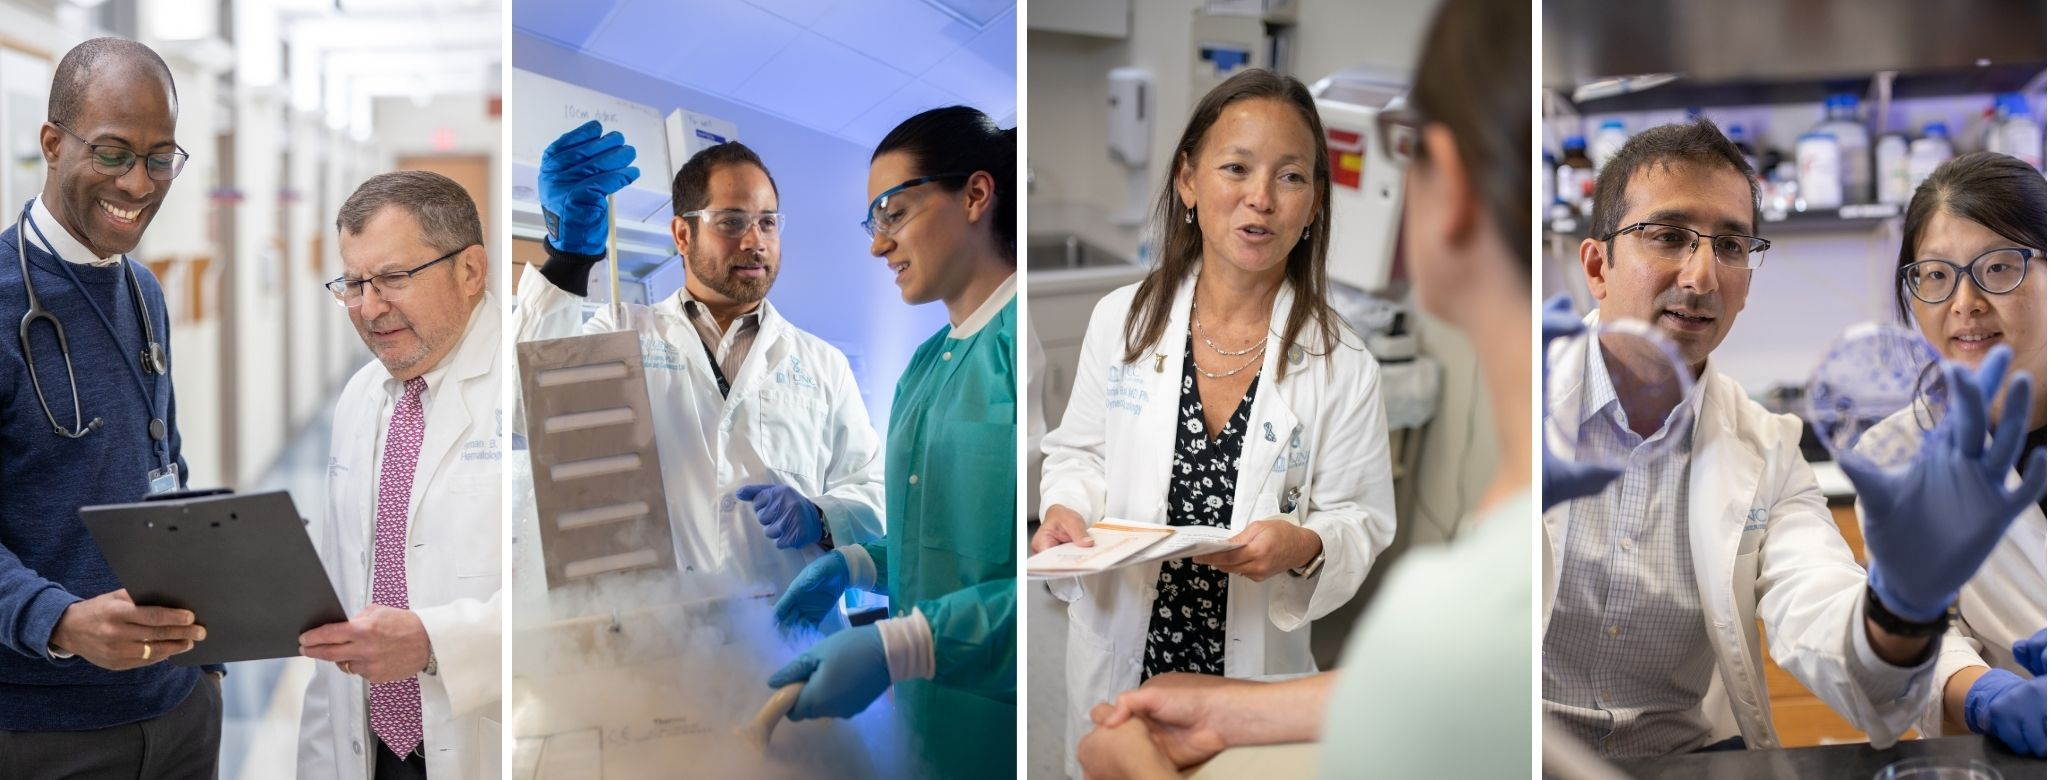 Four scenes showing people engaging in lab research or clinic care. The people in the photos are from diverse racial and ethnic backgrounds.